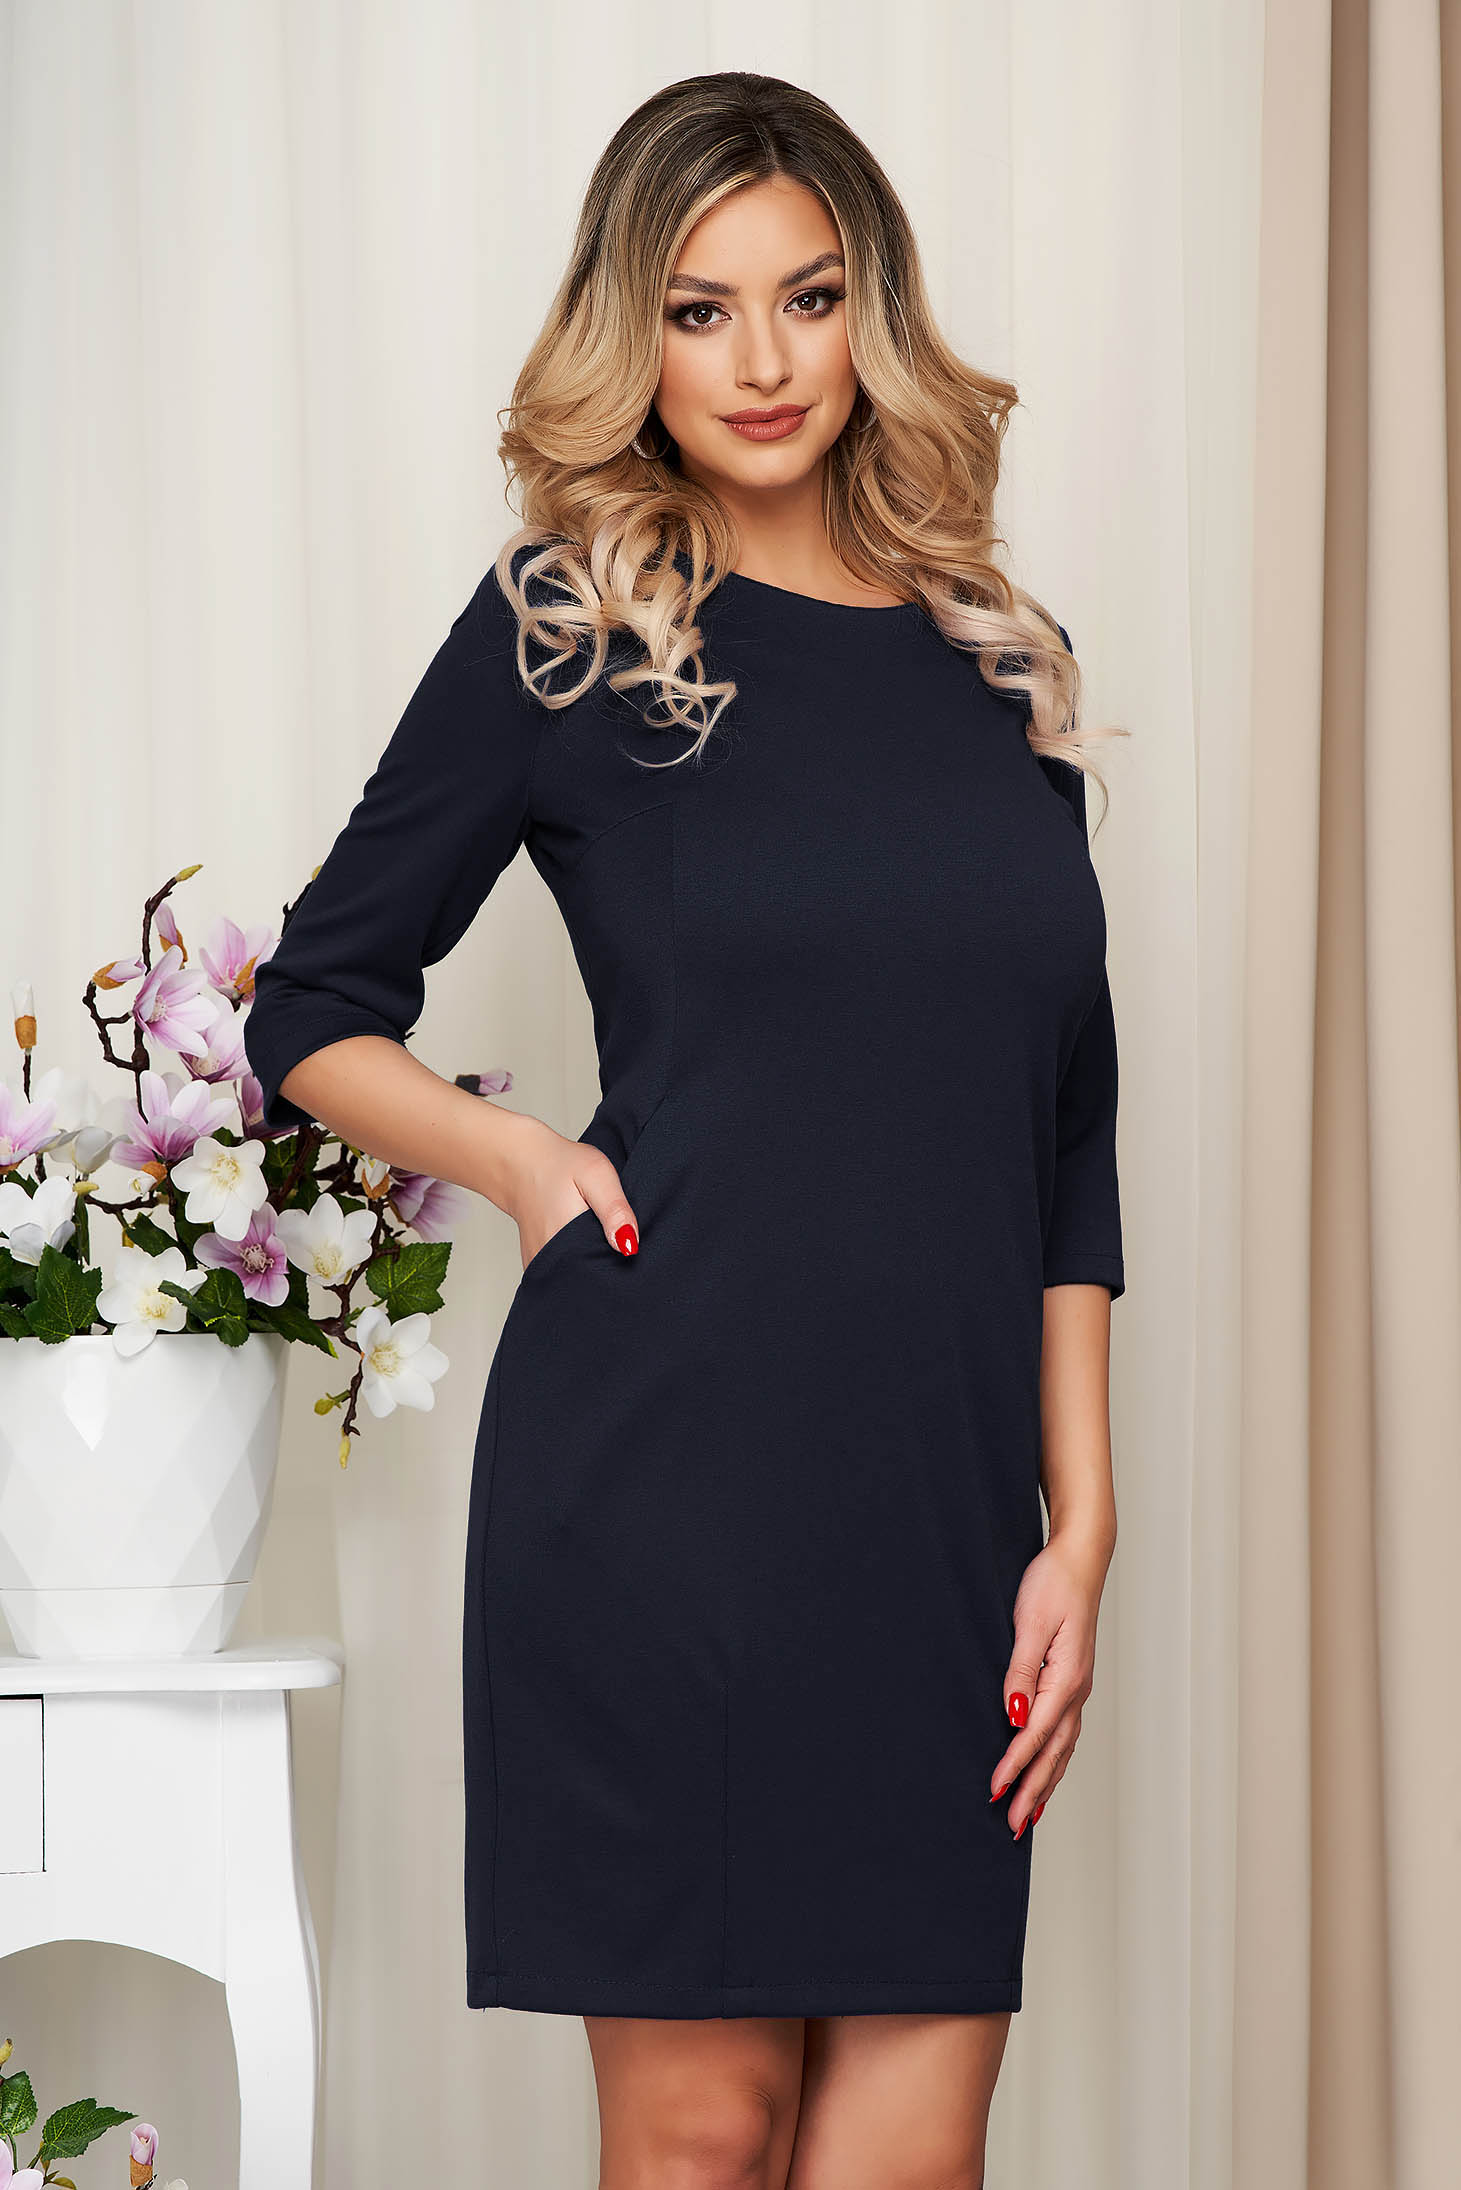 Dress darkblue office slightly elastic fabric straight with pockets